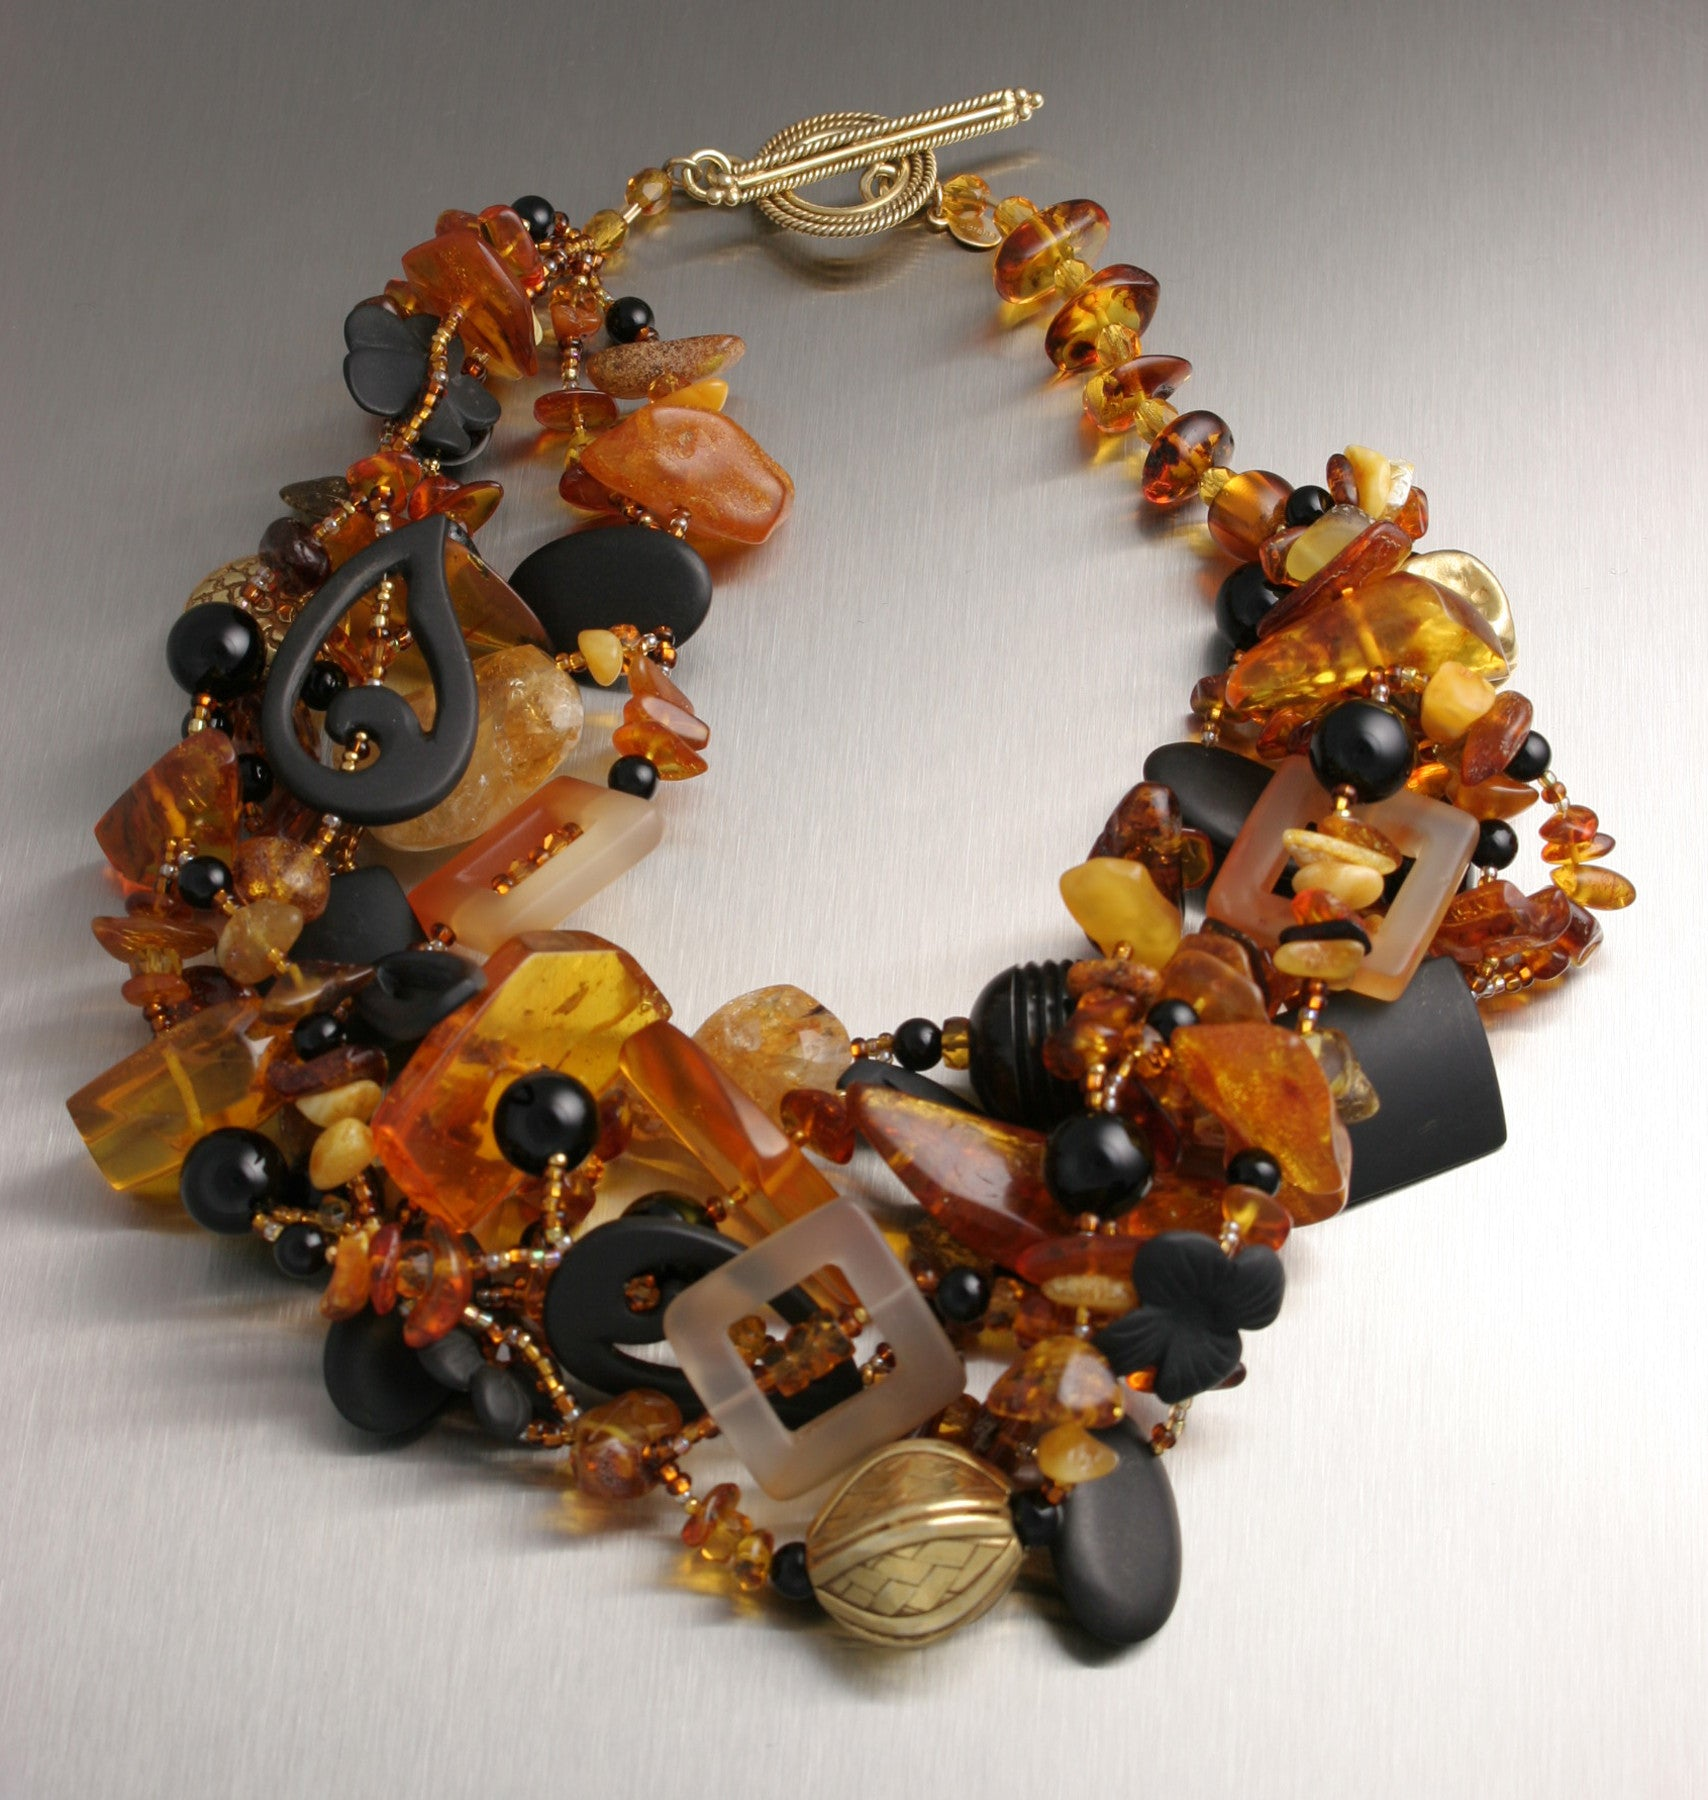 Enjoy Beaded Gemstone Jewelry Every Day